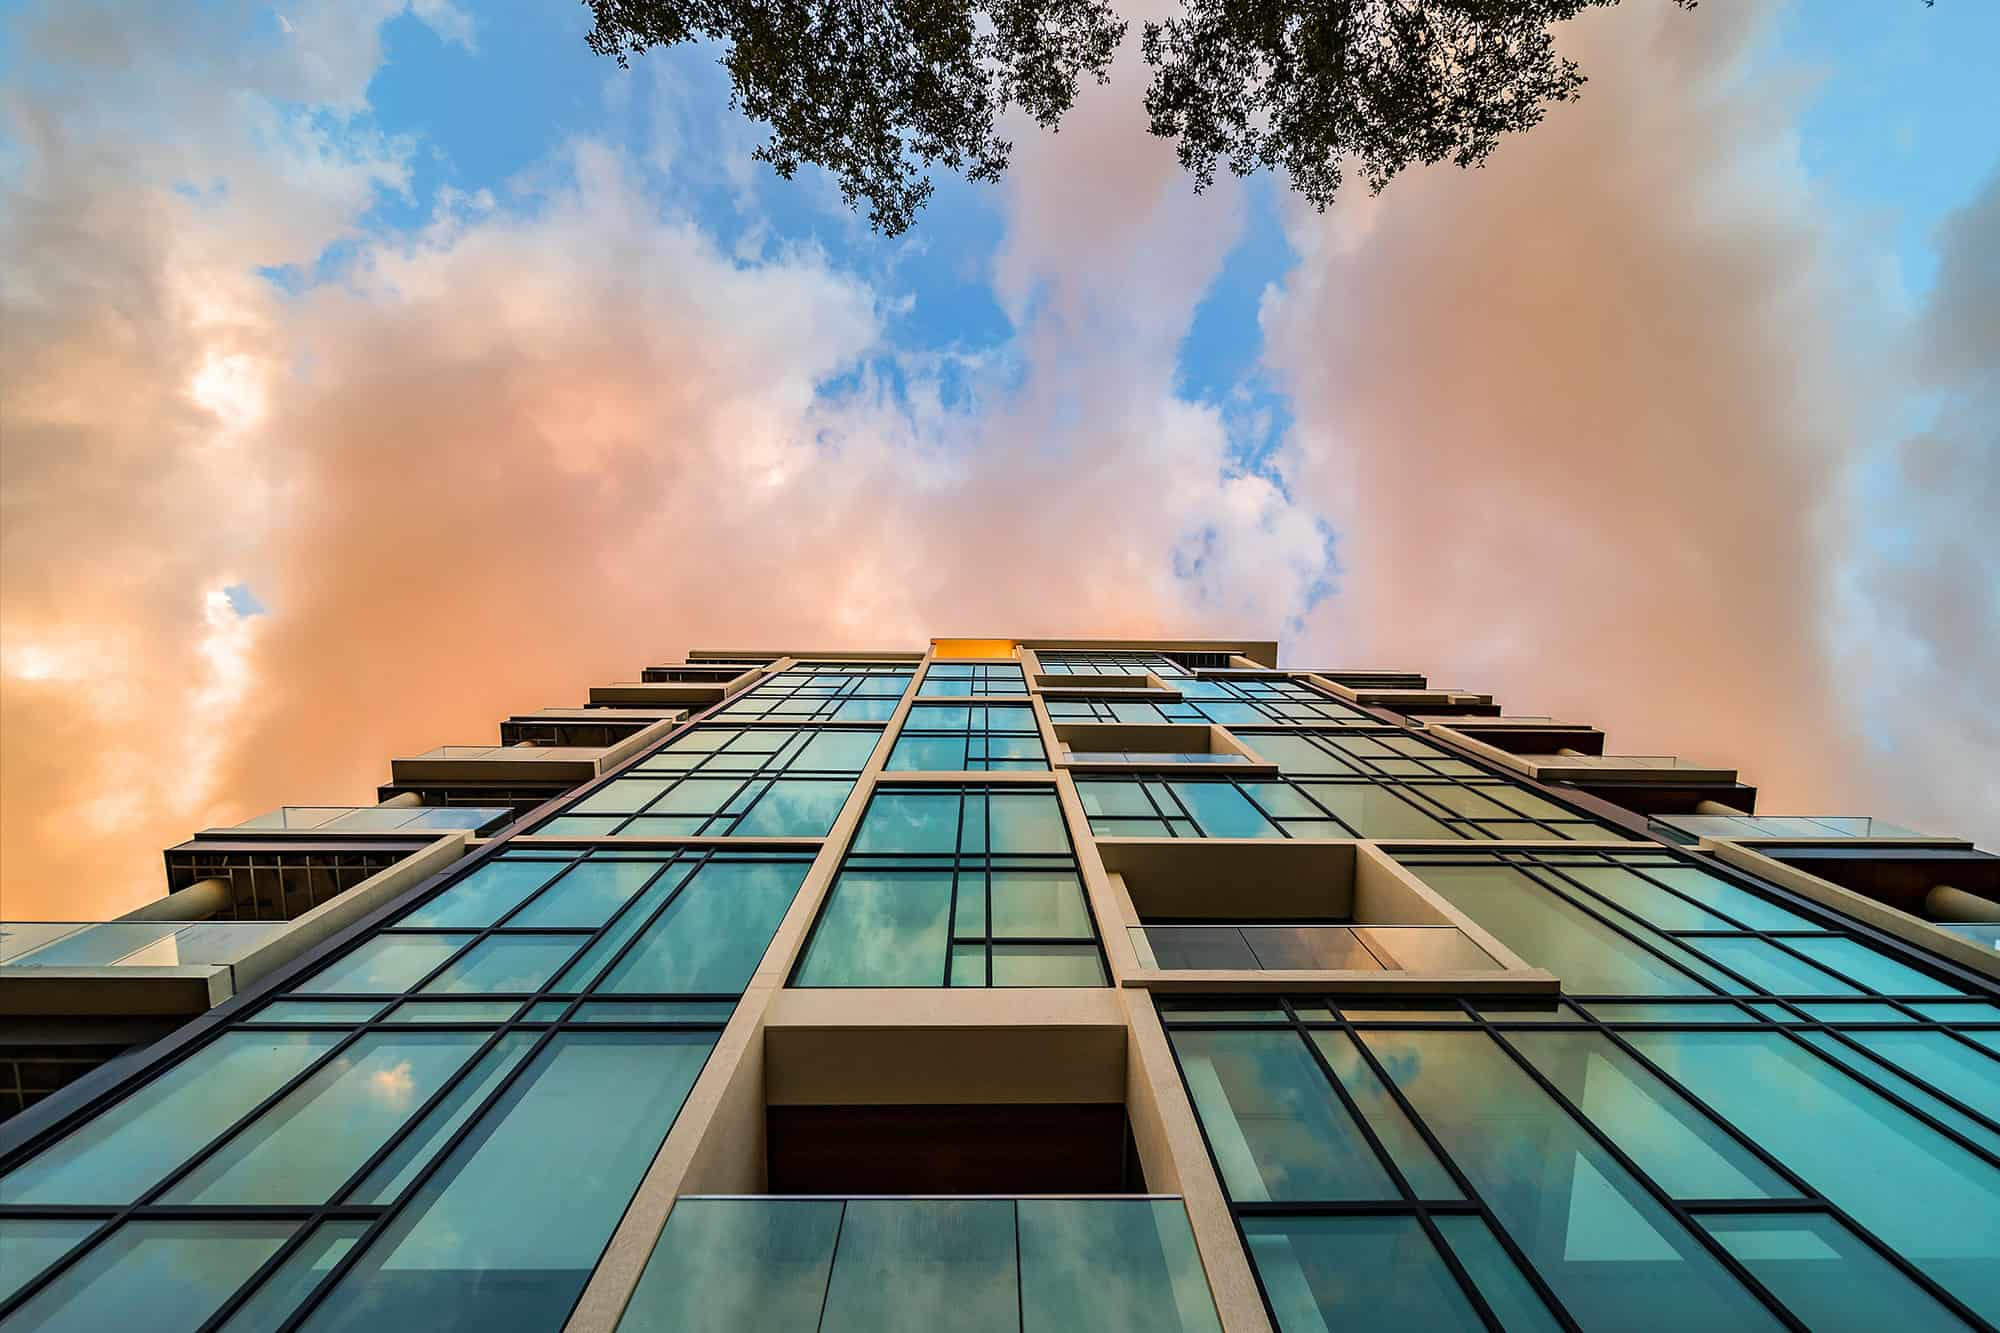 mondrian luxury apartments facade from the ground looking up to the sky